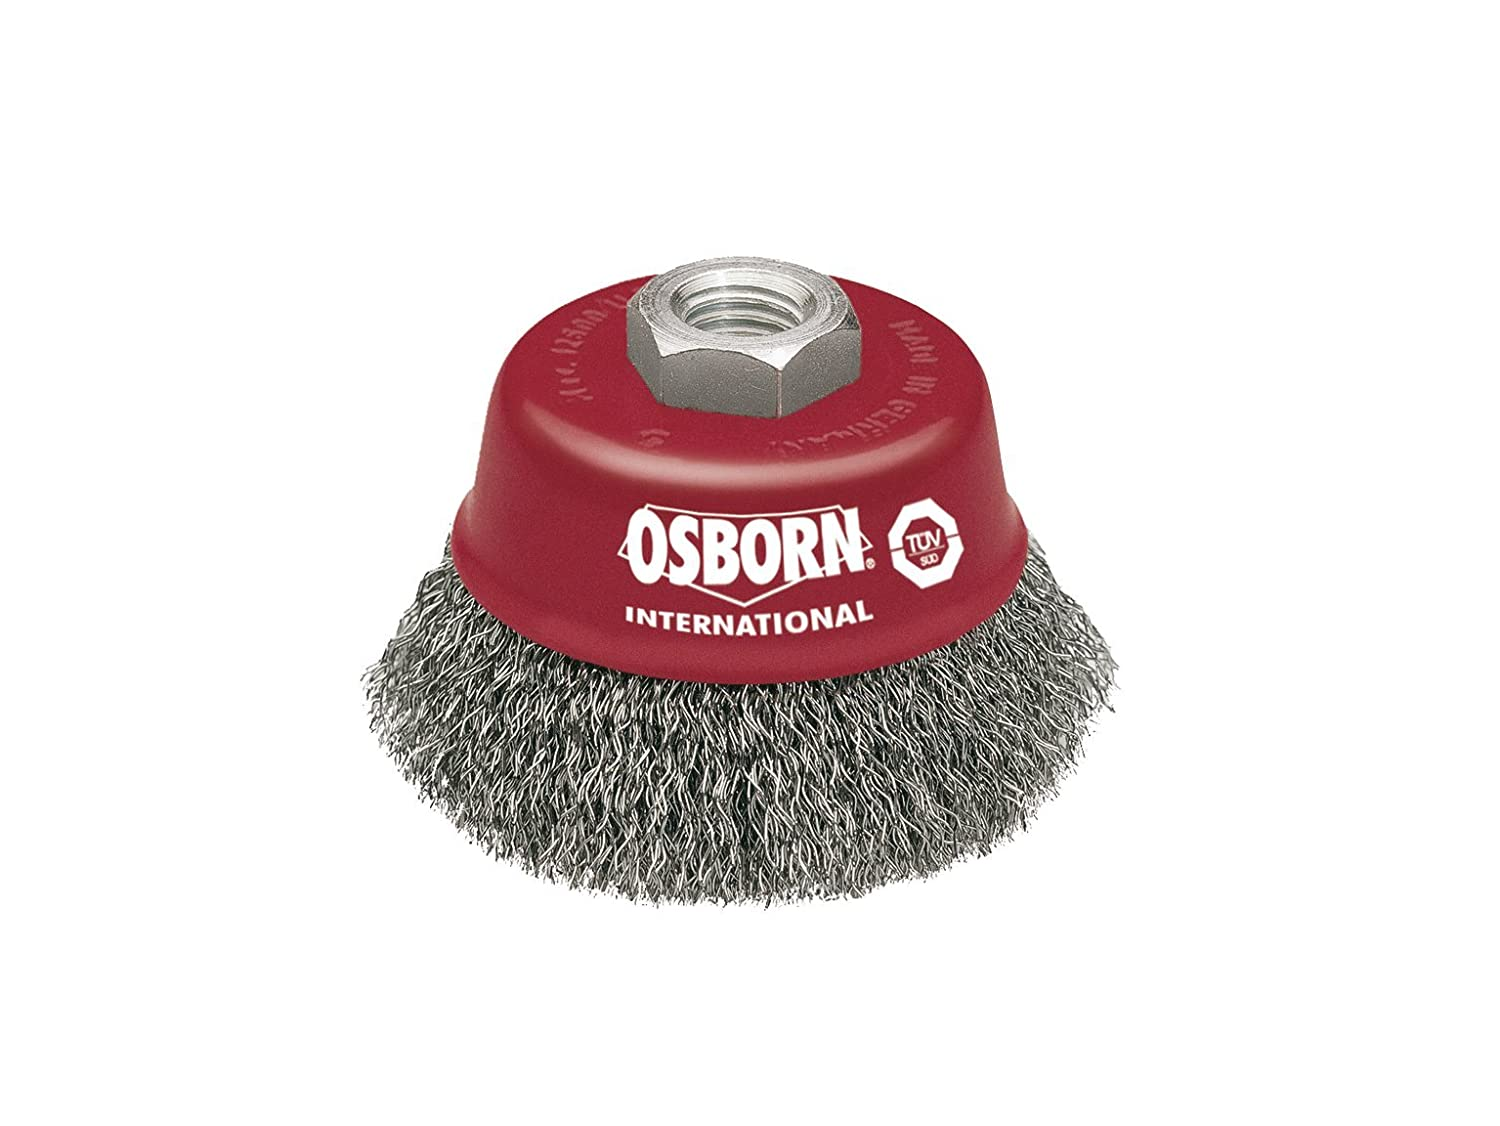 Osborn 2613162 Cup Brush M14X2 Crimped of Steel Wire, 0 V, Silver/Red